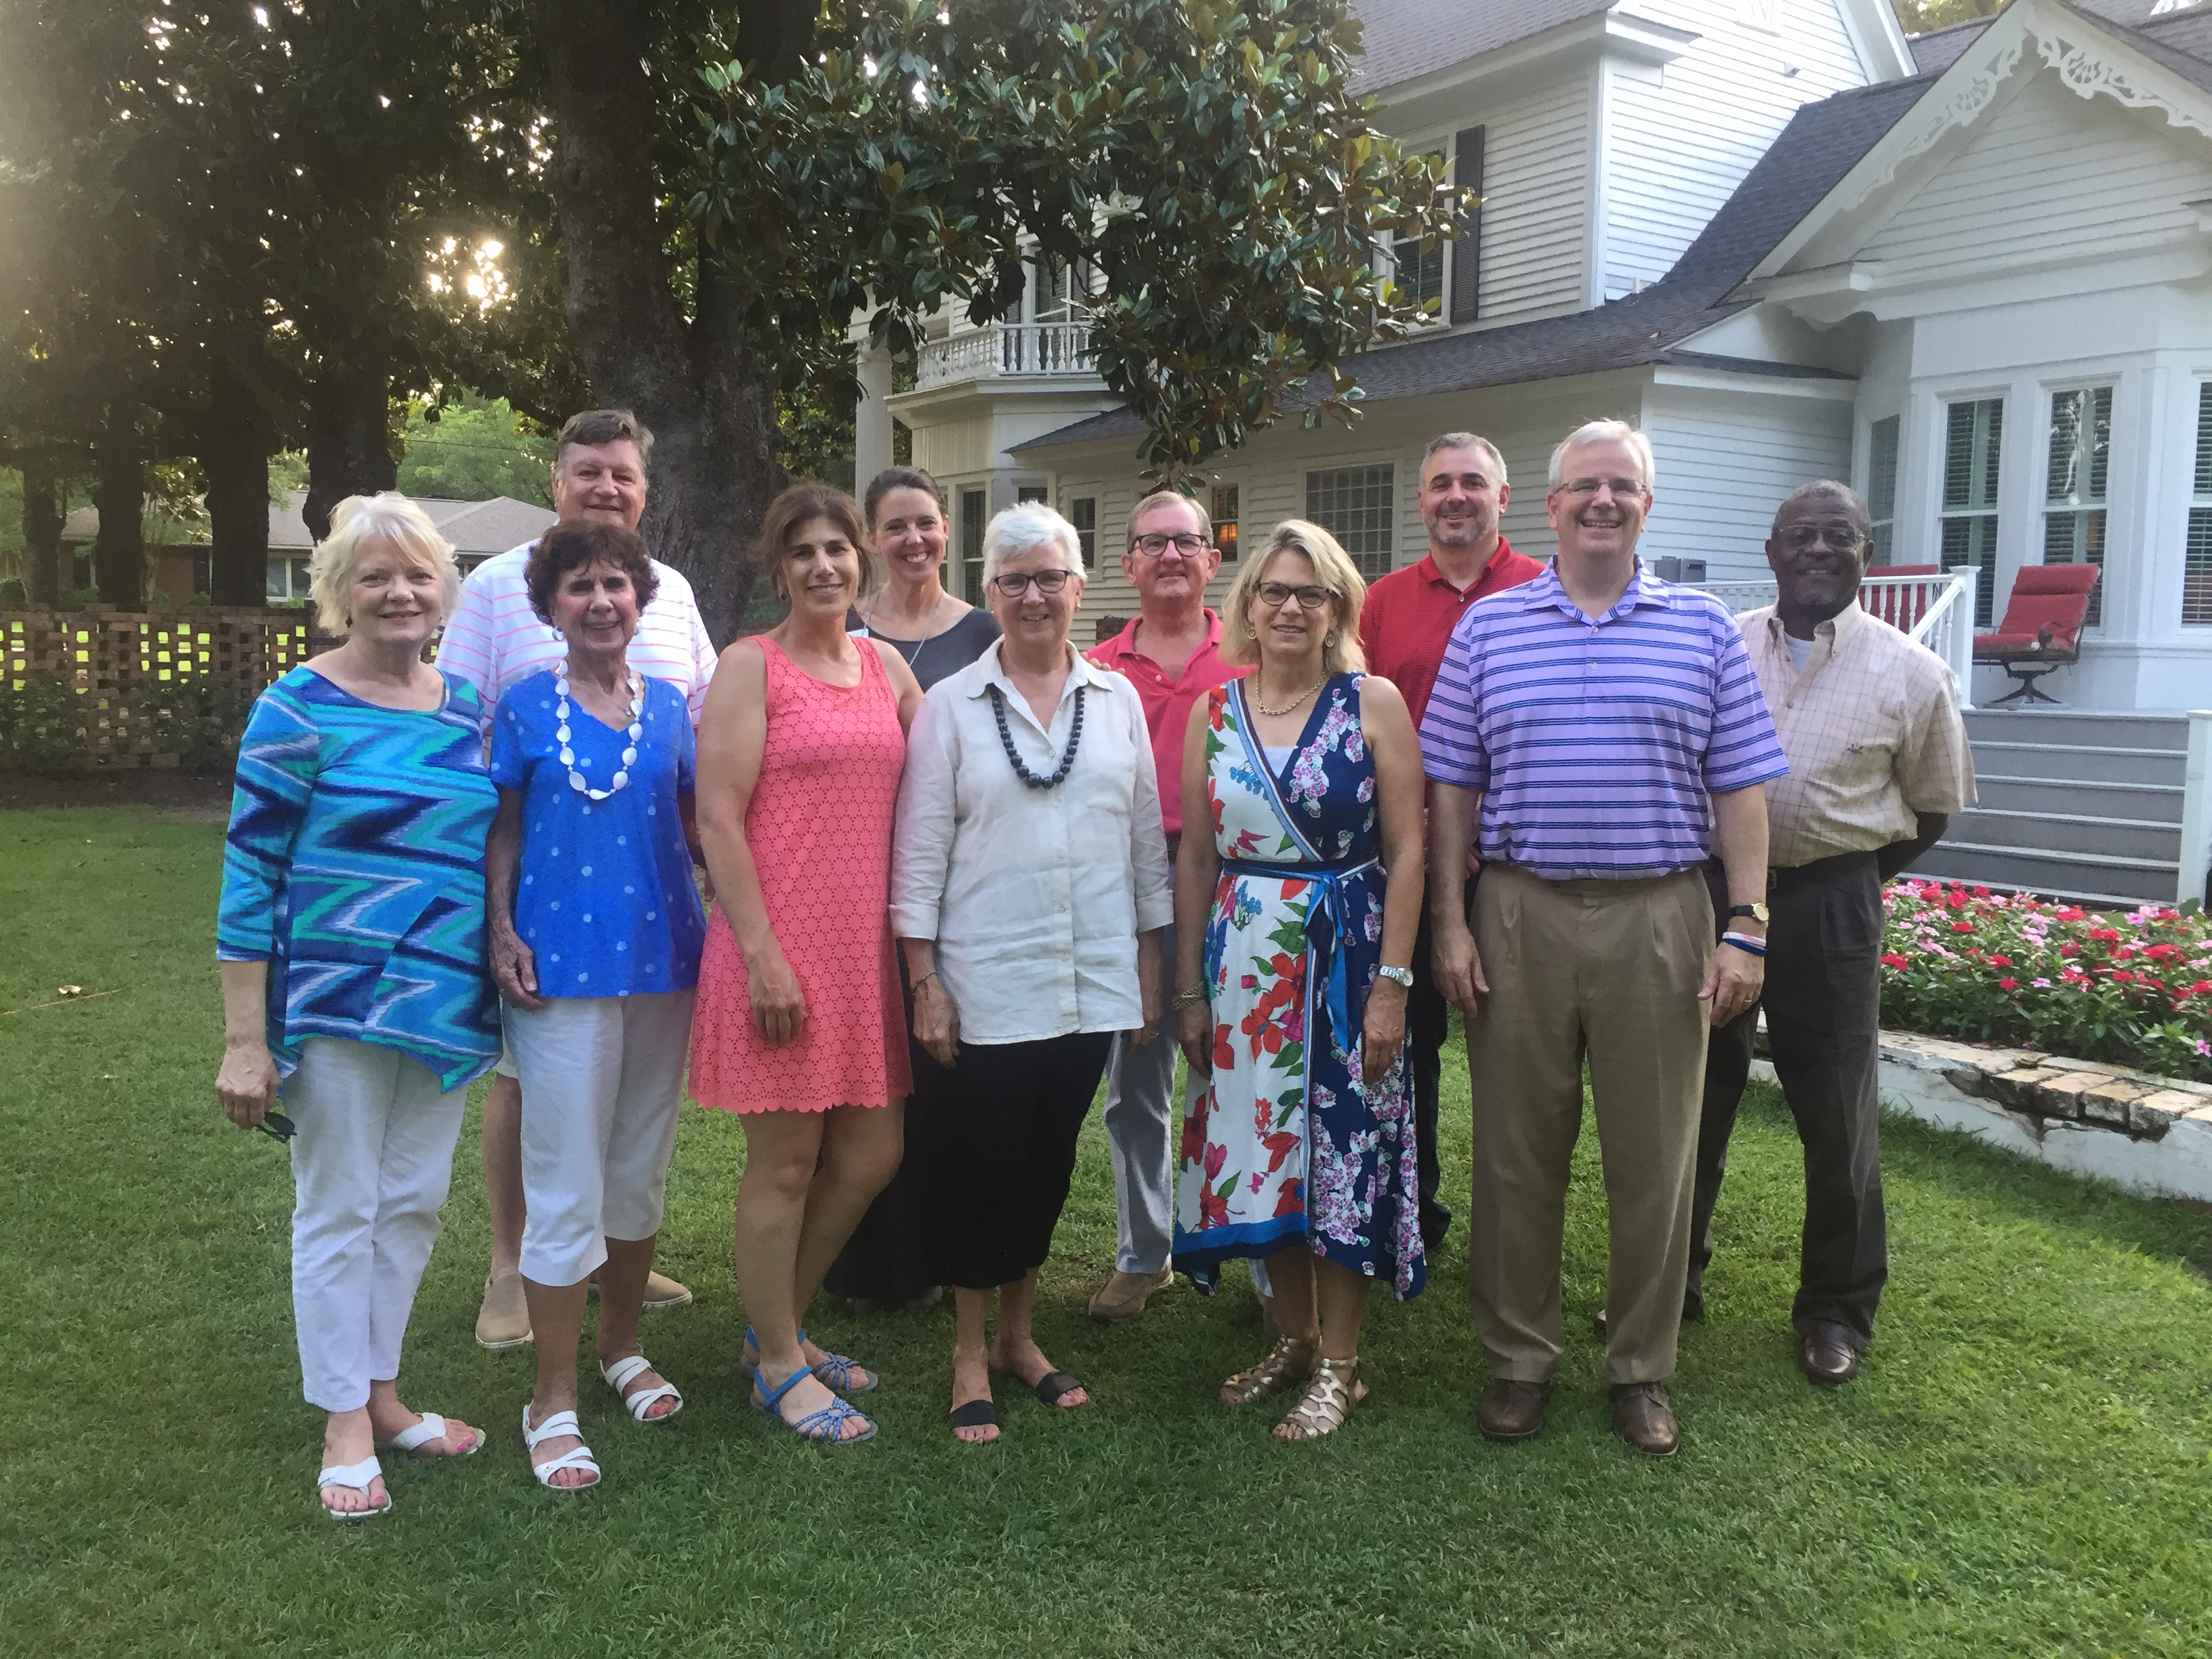 (Back row, left to right) Jeff McNeil (HCCF board president), Dawn Neighbors (NCCF regional director), Ron Huff (HCCF vice president and grants chair), David Edmundson and Marshall Lyons. (Front row, left to right) Jean Harrison (secretary), Grace McDonald, Leah LEach, Wanda McPhaul, Jodi Willis and John Jordan. Not pictured: Wanda Cohen, Candace Hayworth, Shari Dahman, Joe Poole and Regina Joe.